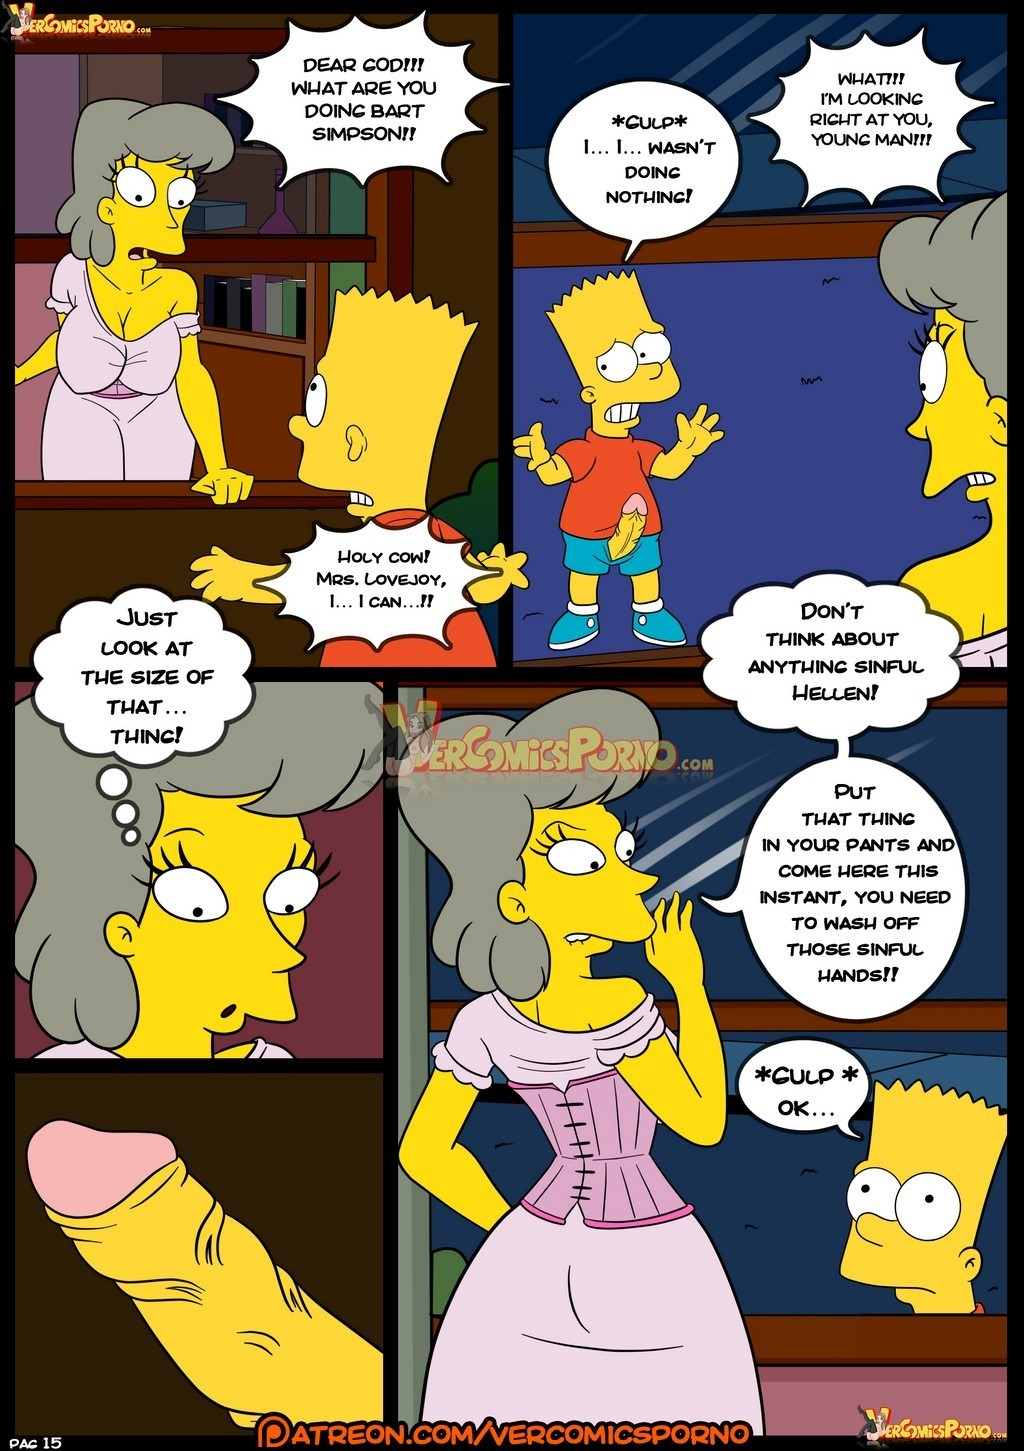 16 11 - The Simpsons. Part 8.